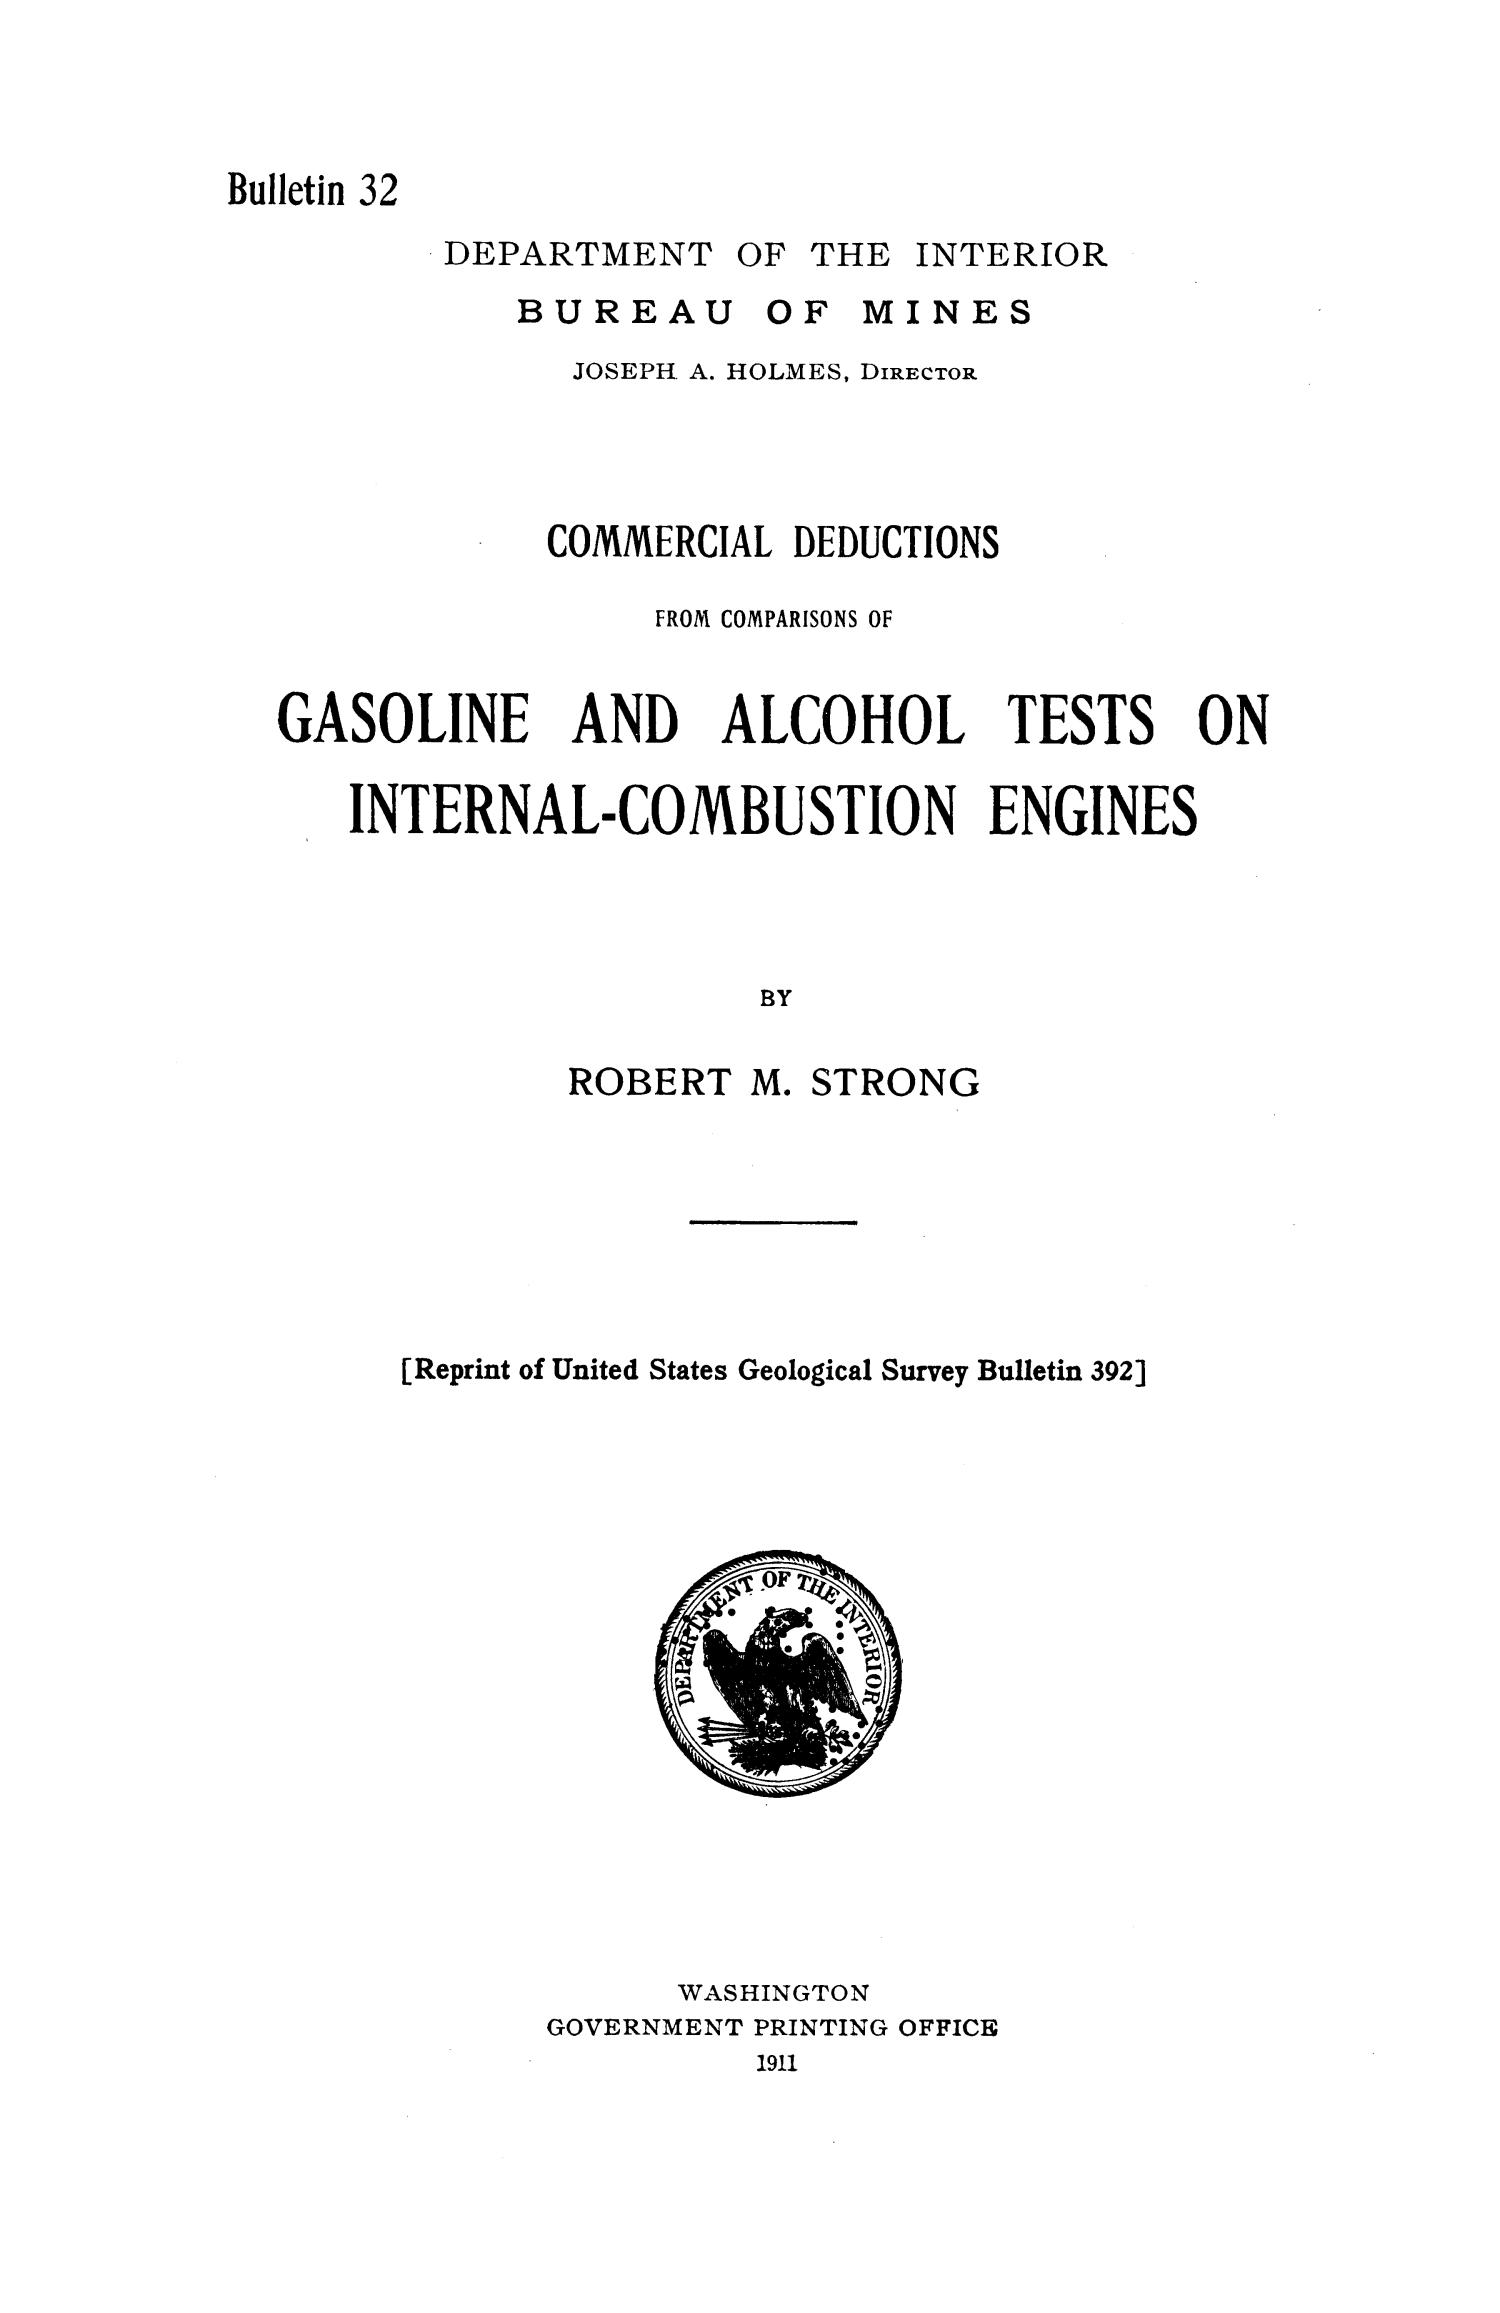 Commercial Deductions from Comparisons of Gasoline and Alcohol Tests on Internal-Combustion Engines                                                                                                      1